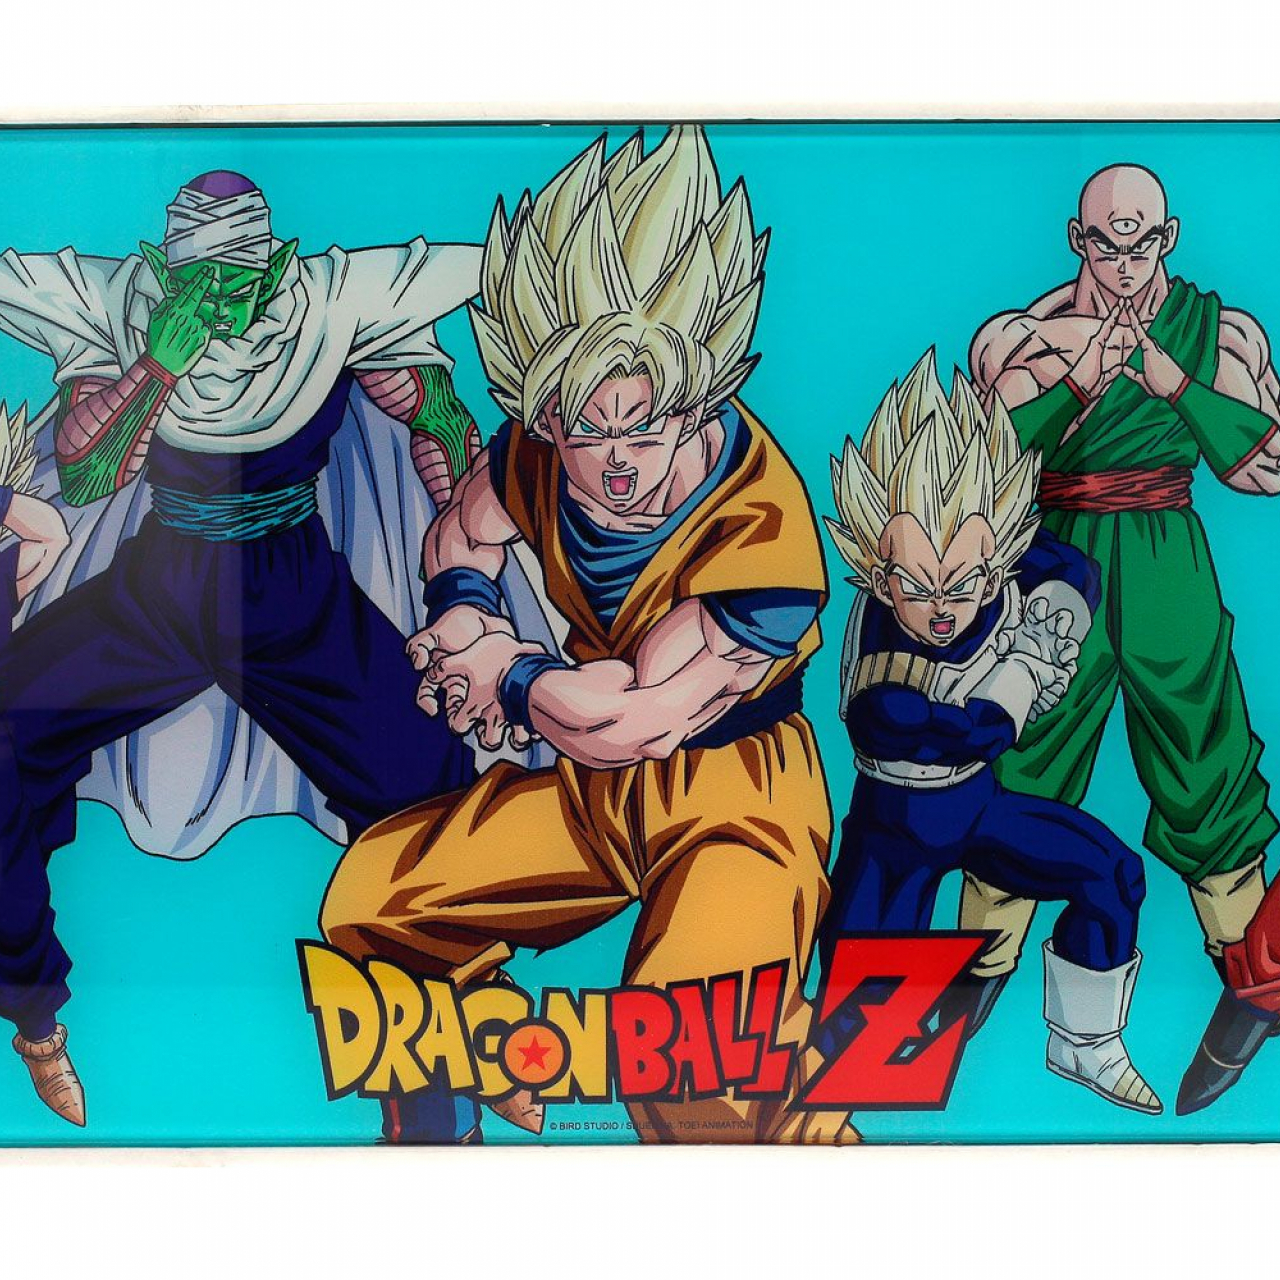 Dragon Ball Z Glass Poster Heroes 30 x 60 cm